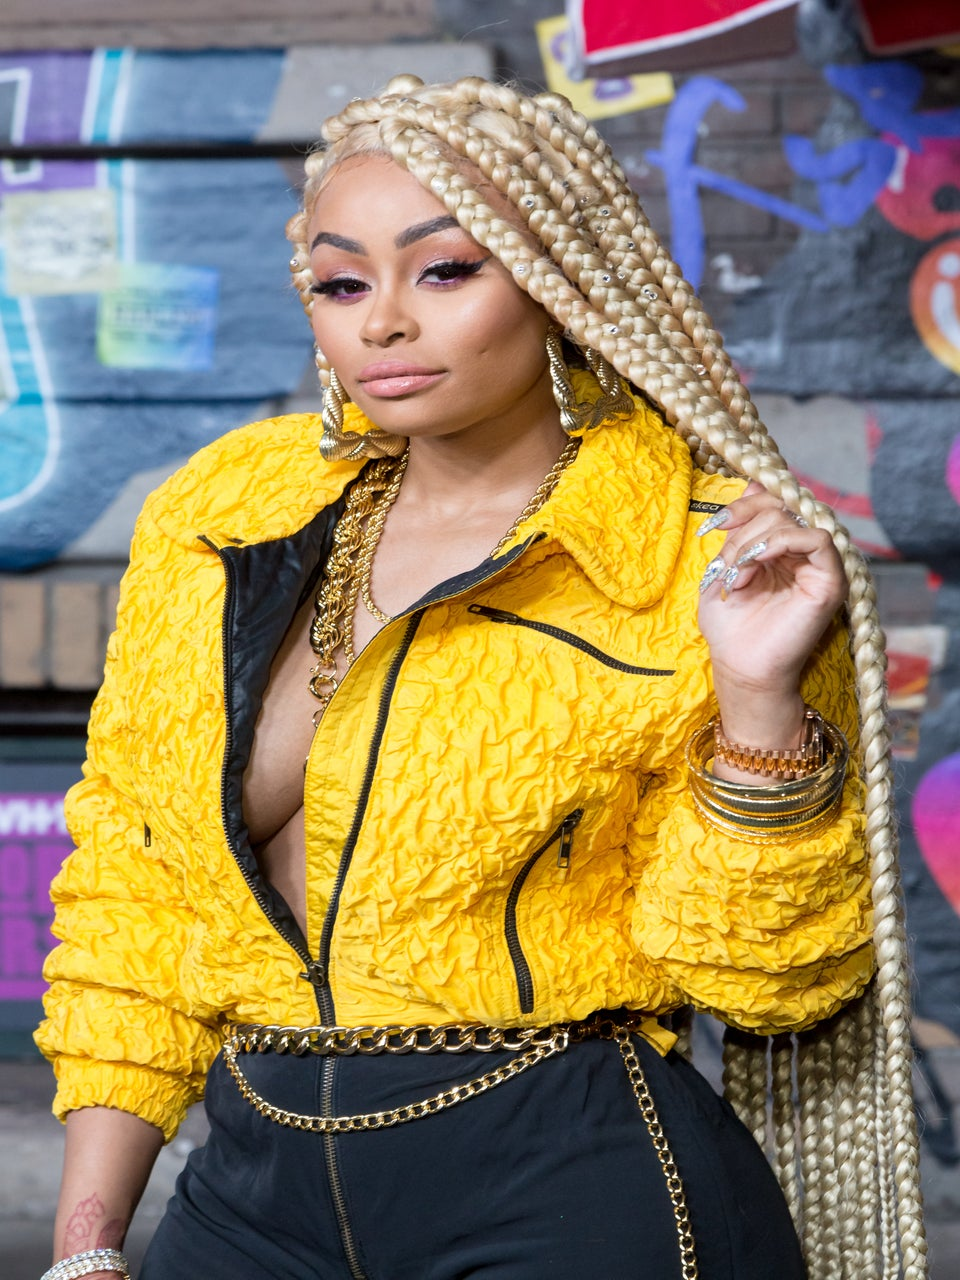 'Like A Pistol:' Blac Chyna Can Now Add Rapper To Her Résumé